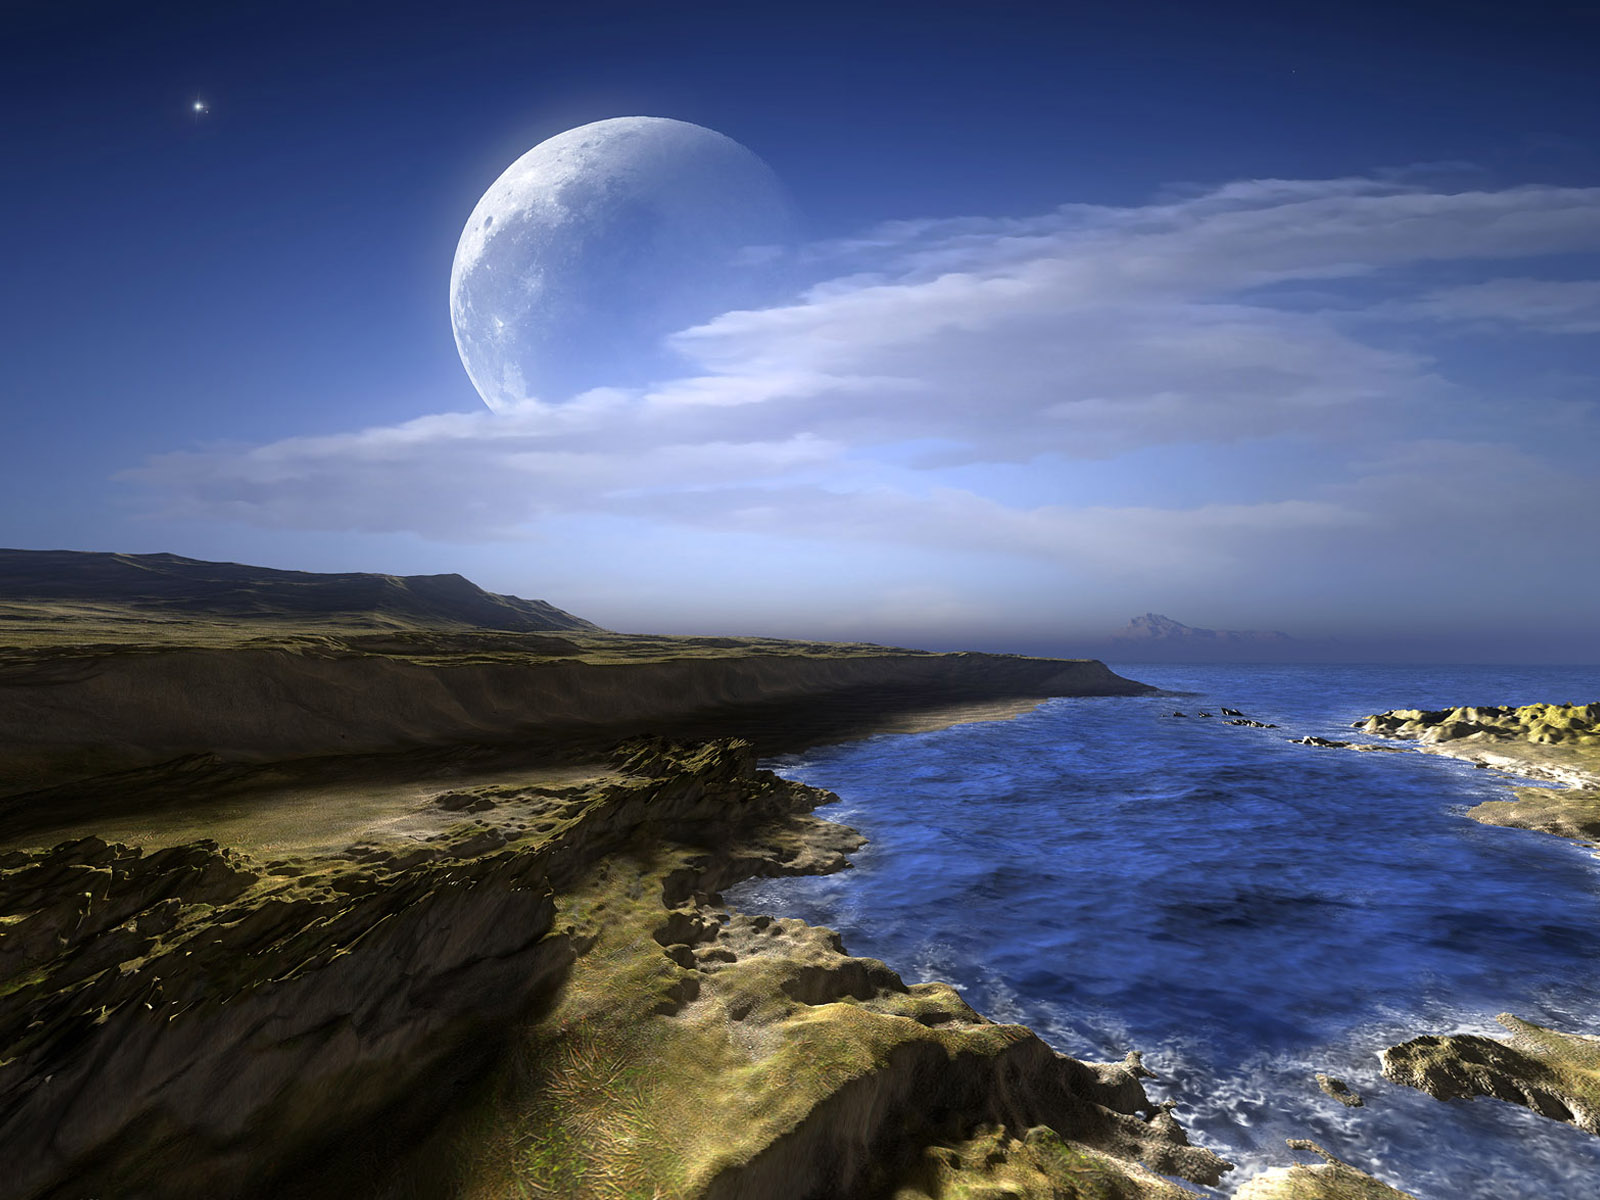 landscapes of planets like earth - photo #8